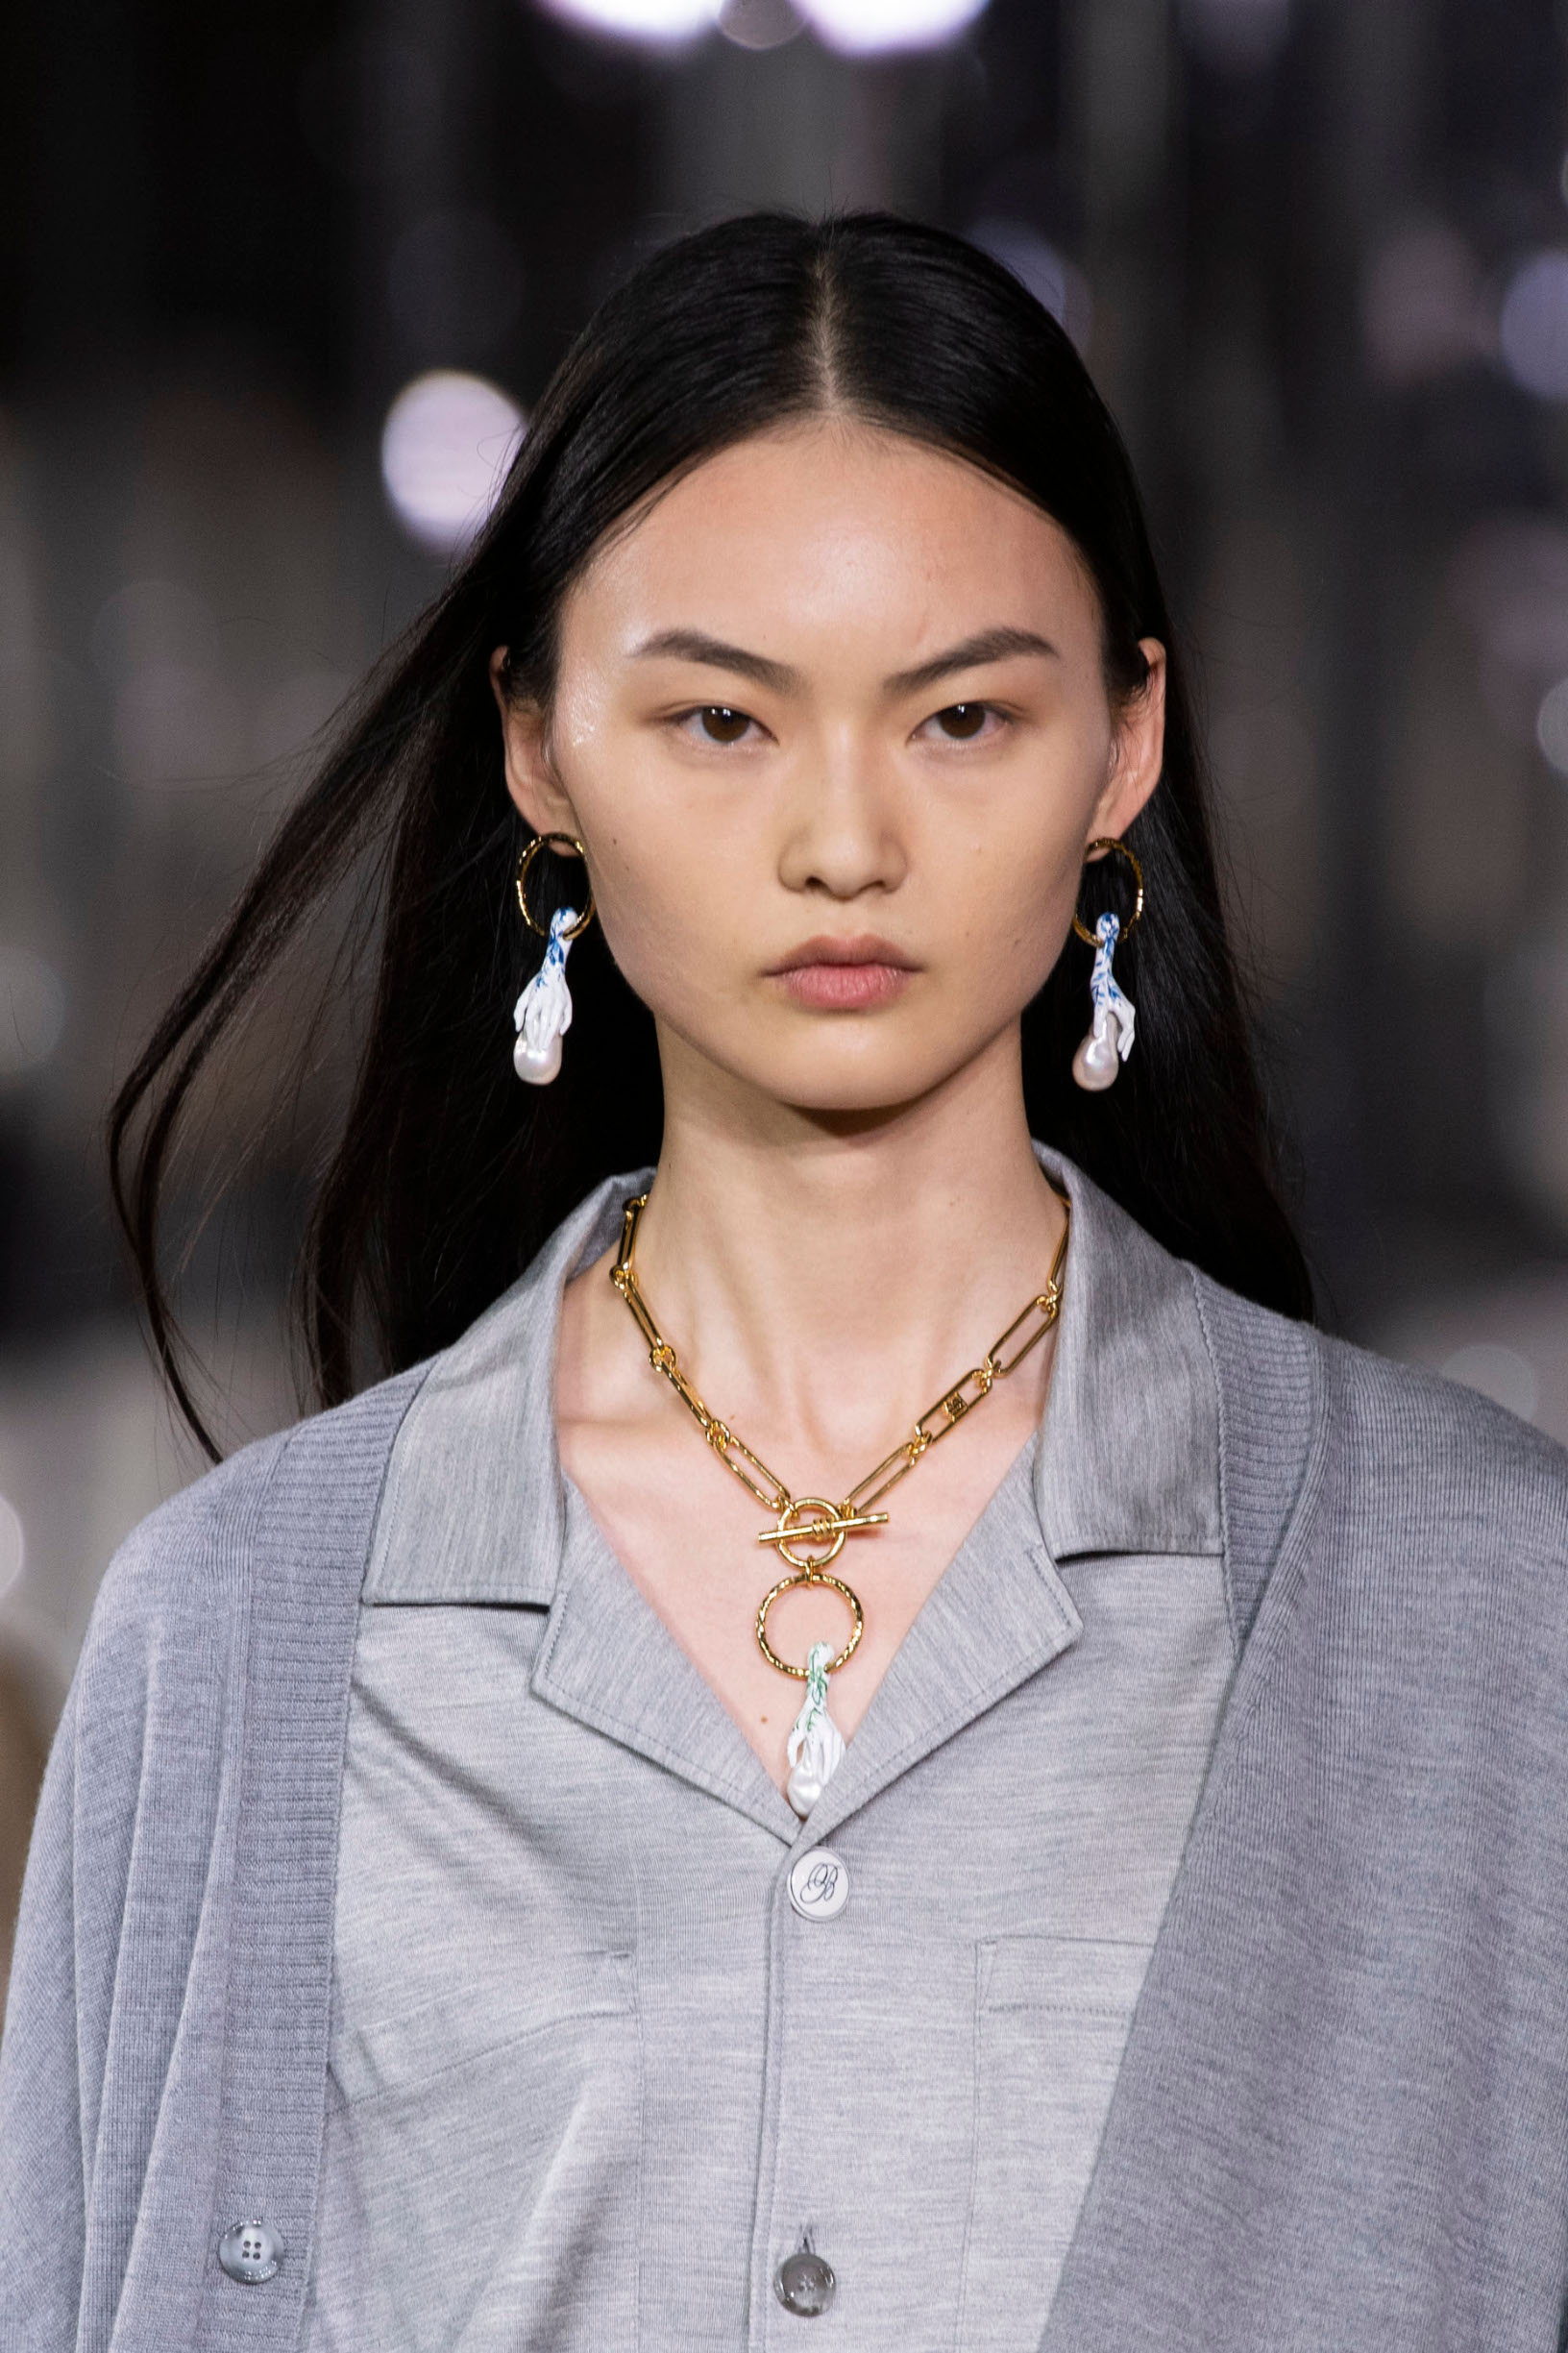 Burberry Spring Summer 2020 Runway fashion show London Fashion Week,  England, UK in September 2019., Image: 471474077, License: Rights-managed, Restrictions: , Model Release: no, Credit line: Rick Gold / Capital pictures / Profimedia